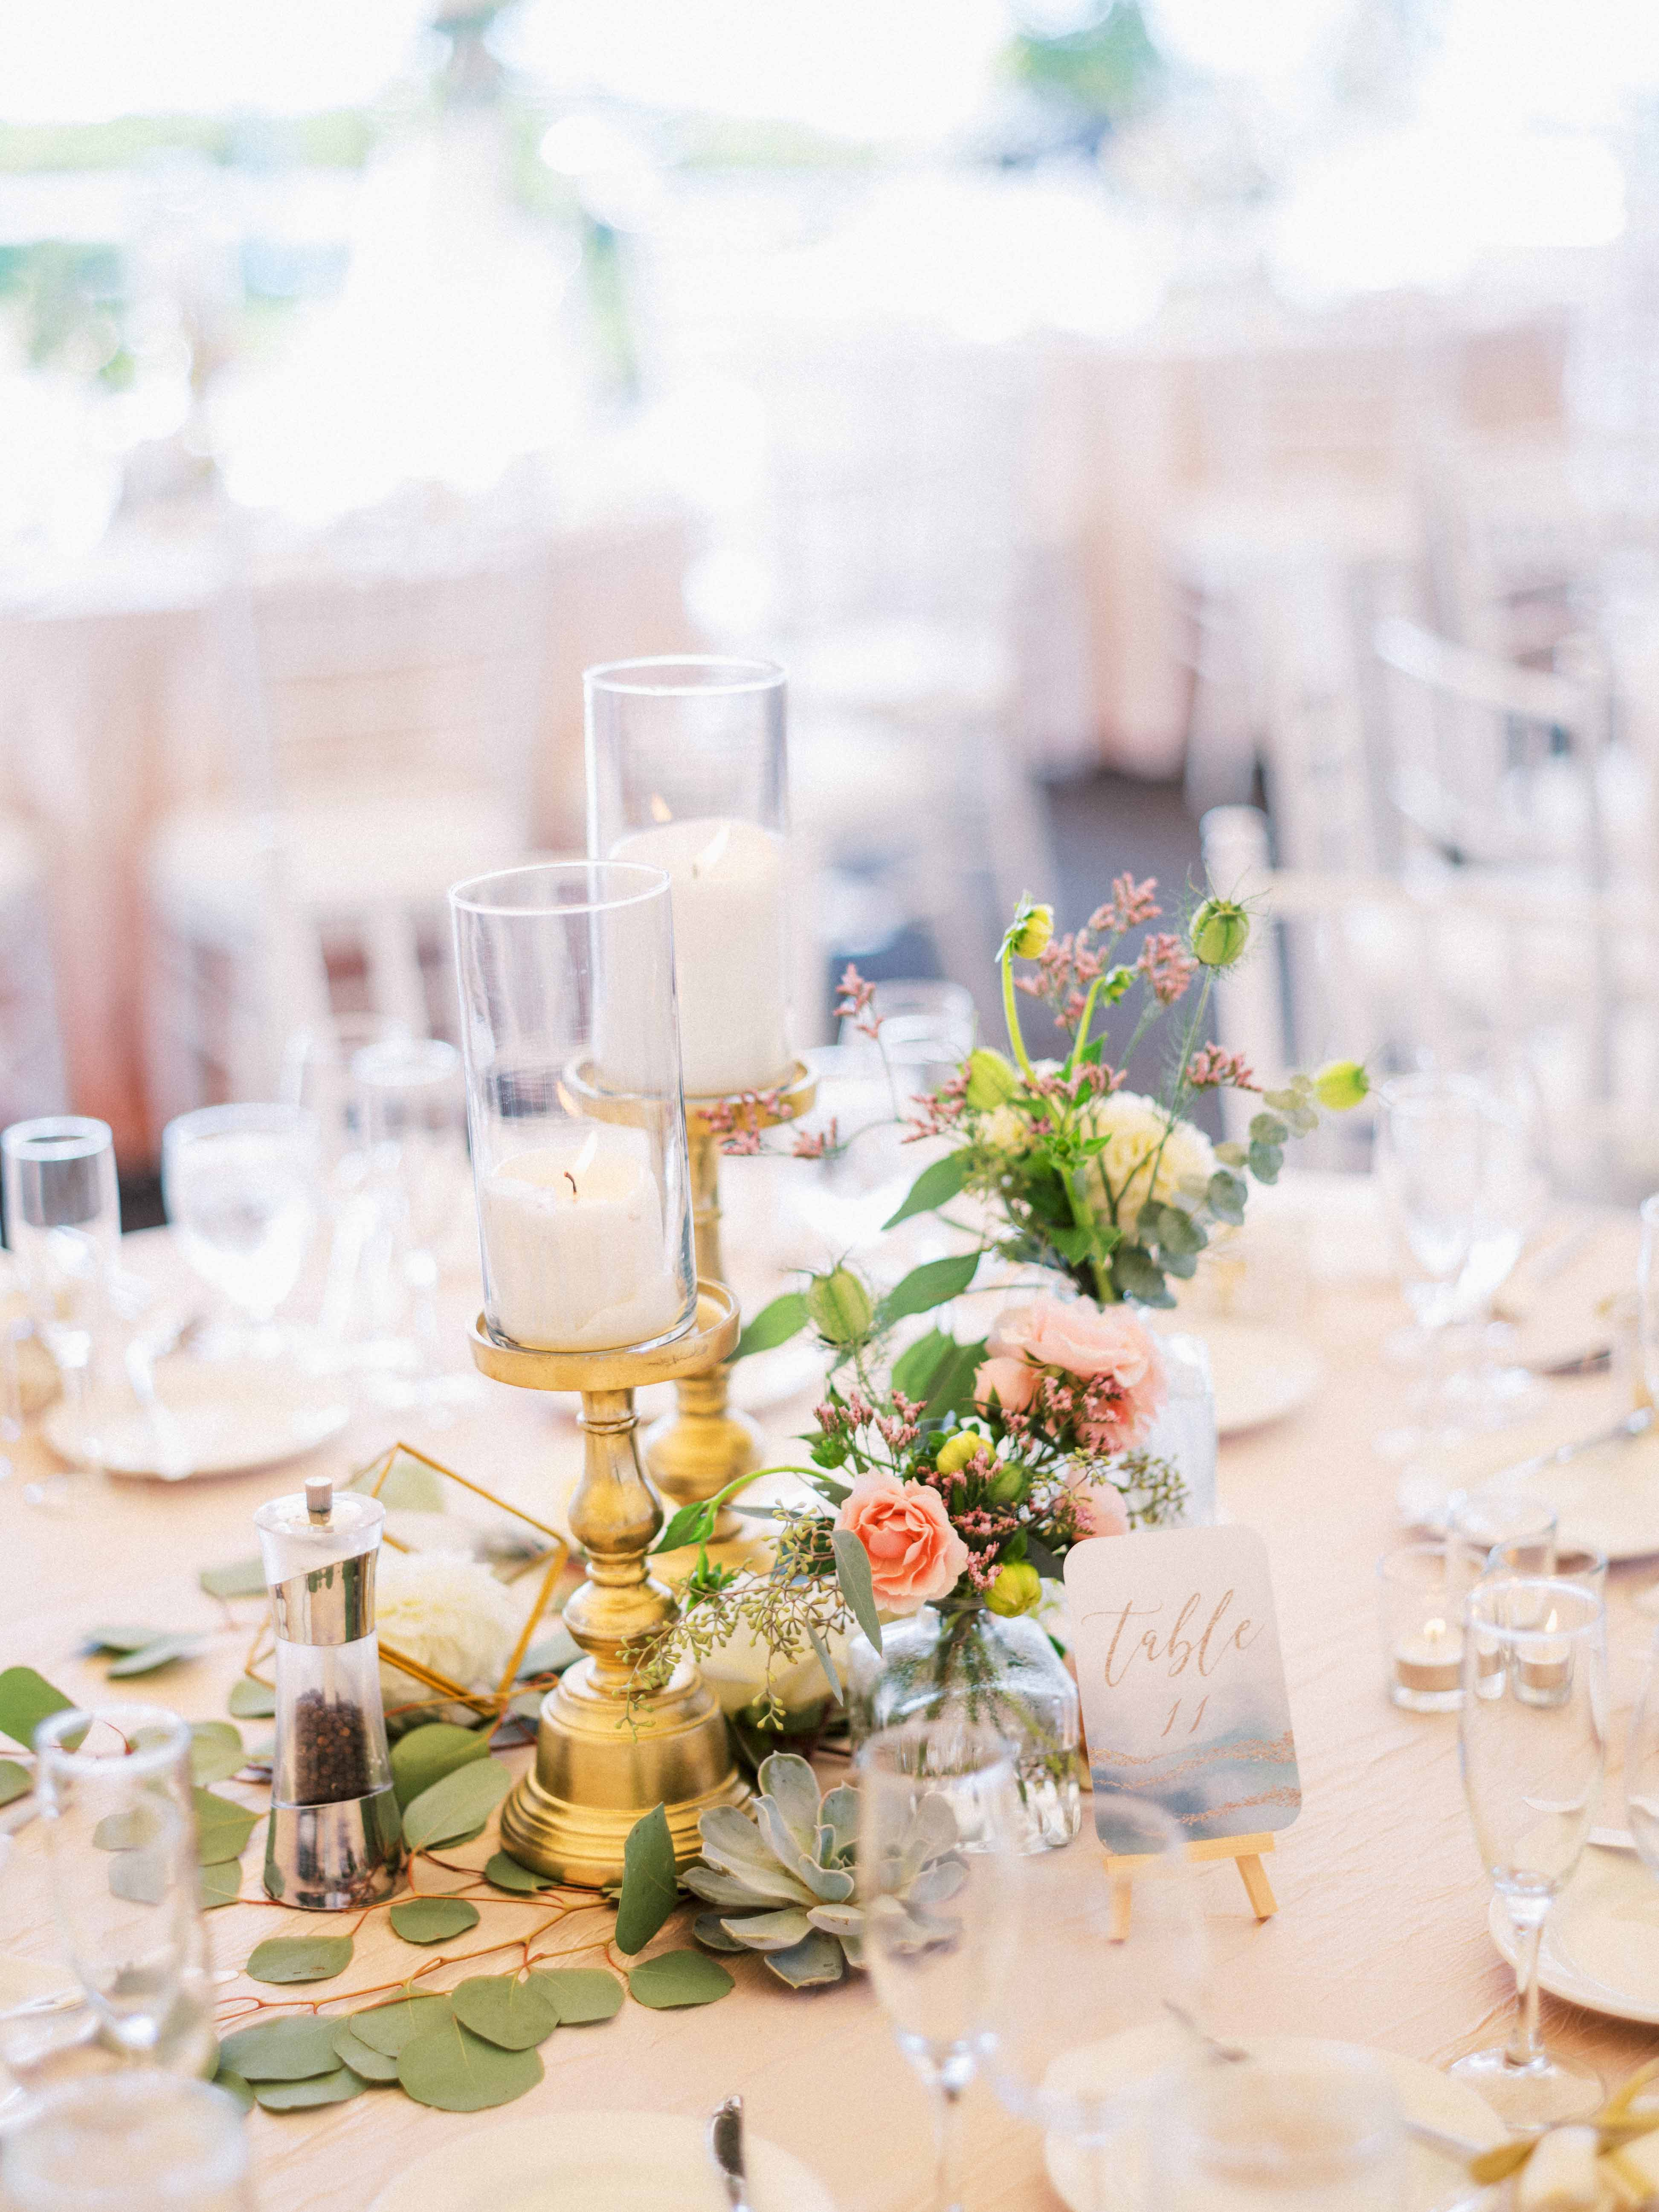 Centerpiece of candles, greenery, blooms - Woodmark Hotel Wedding by Flora Nova Design Seattle